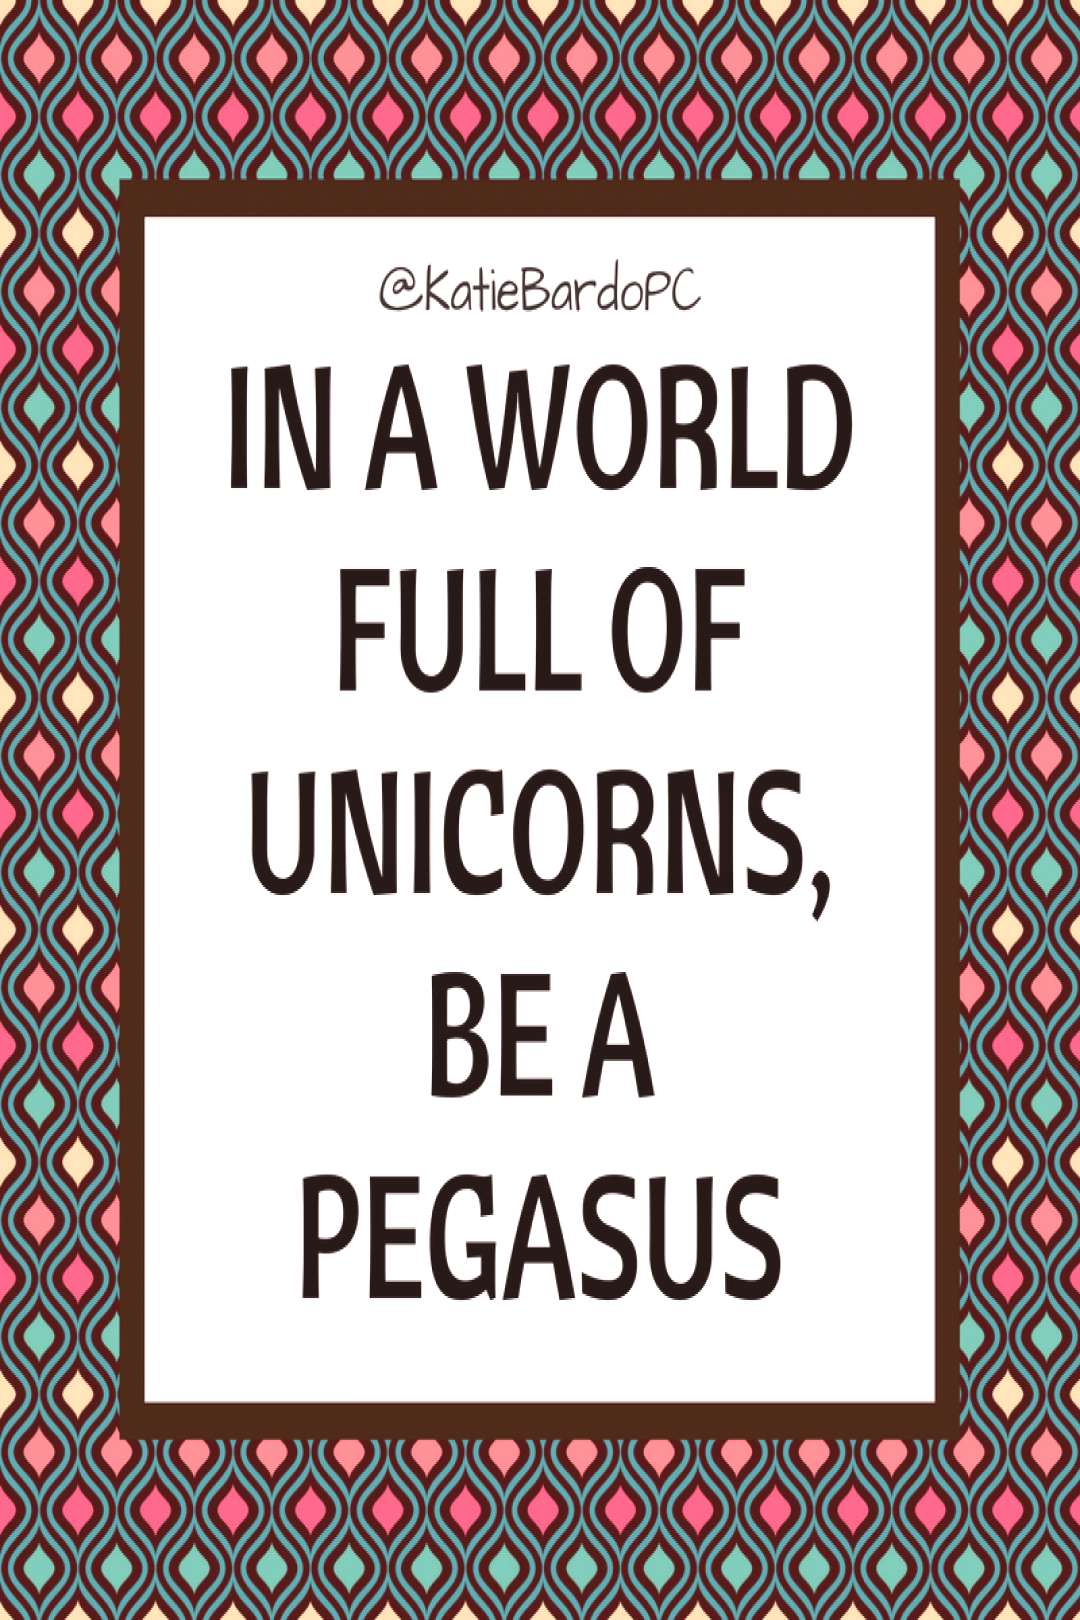 In a world full of unicorns be a pegasus